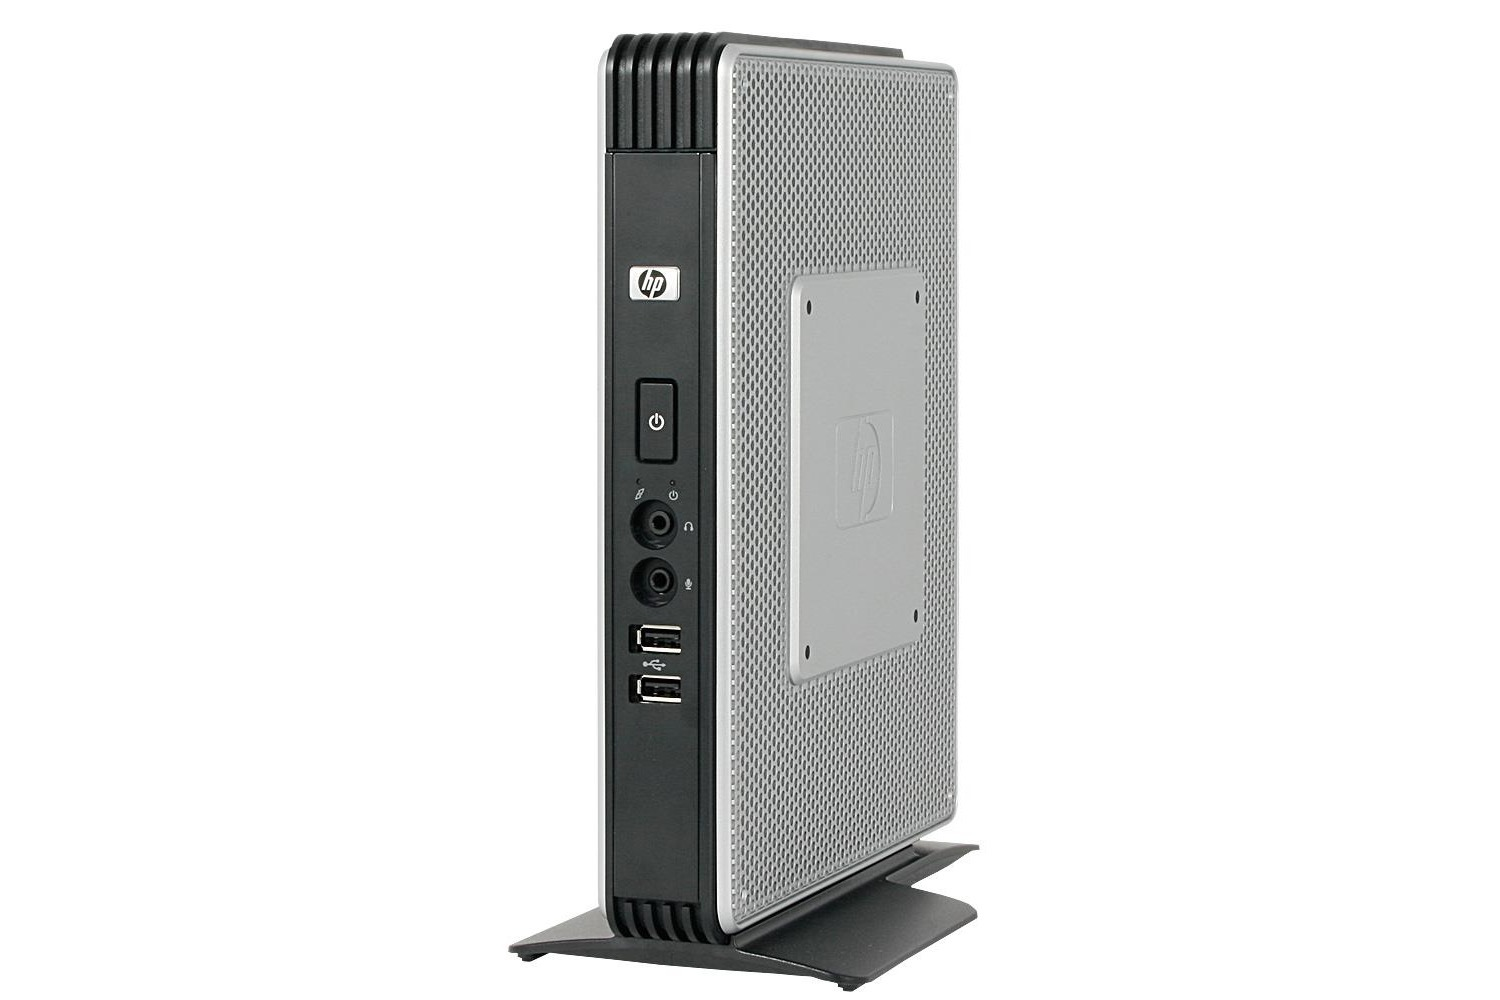 Desktop Clients HP Flexible Thin Client T5735 AMD 1GB/1GB W/O OS LAN